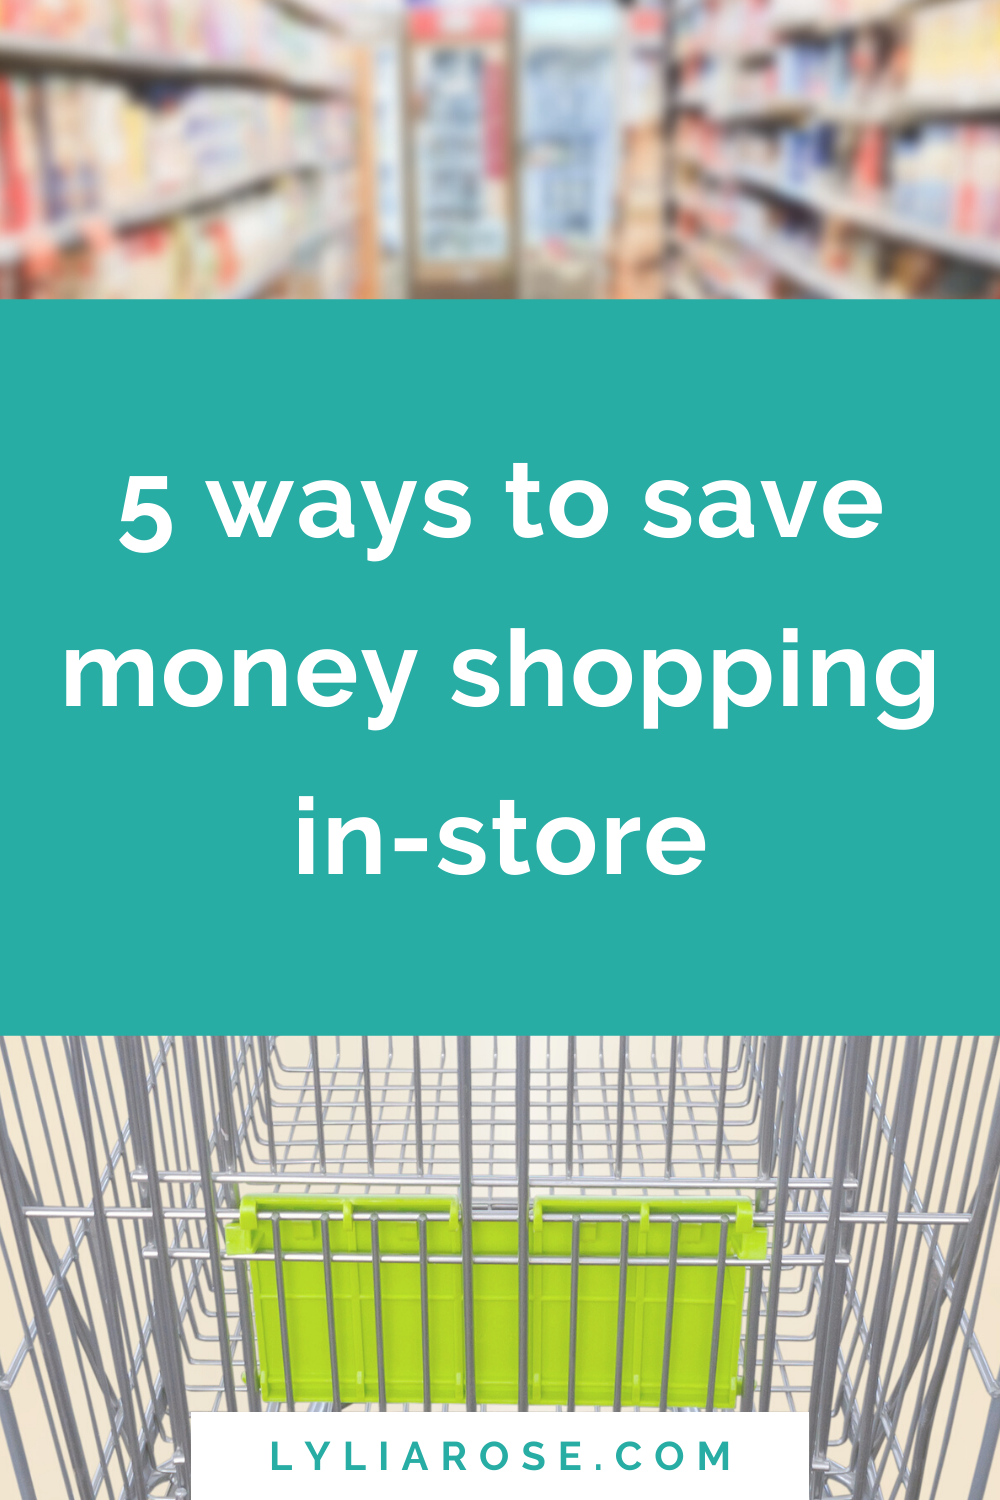 5 ways to save money shopping in-store